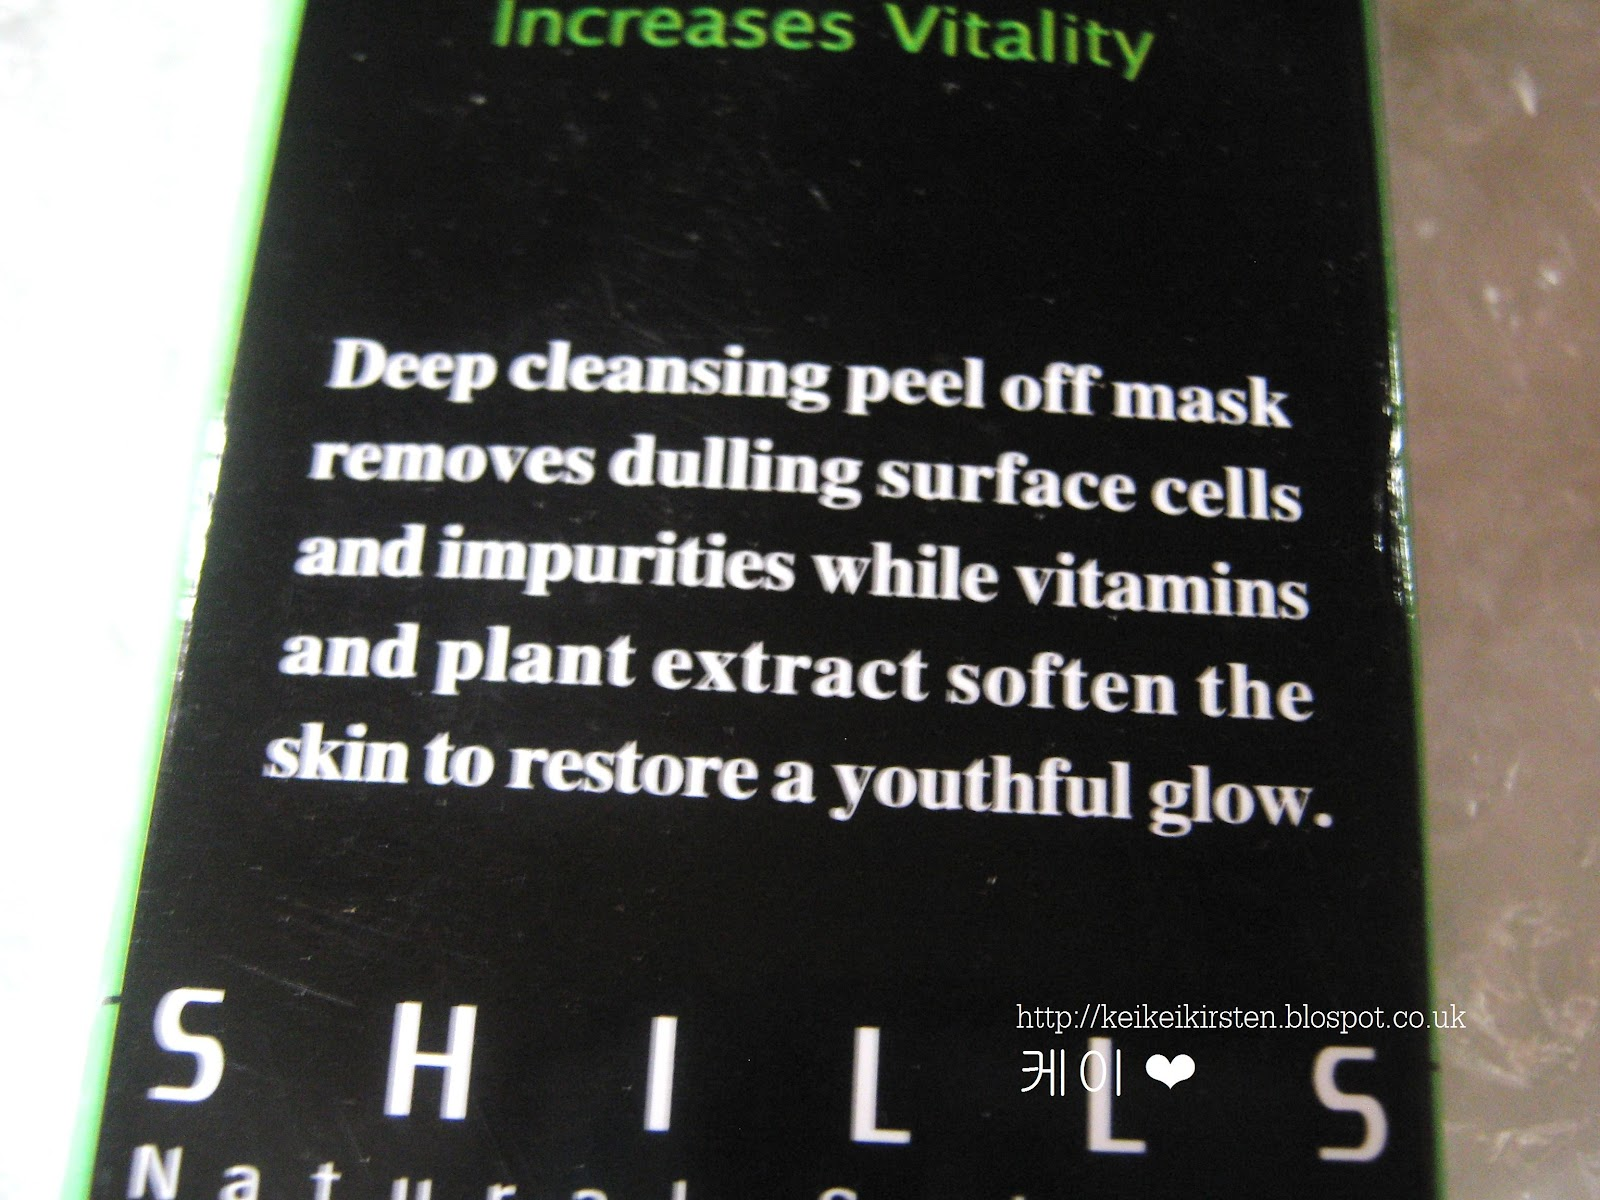 Keikeikirsten Shills Purifying Peel Off Black Mask Original Shill Deep Cleansing Removes Dulling Surface Cells Impurities While Vitamins Plant Extract Soften The Skin To Restore A Youthful Glow